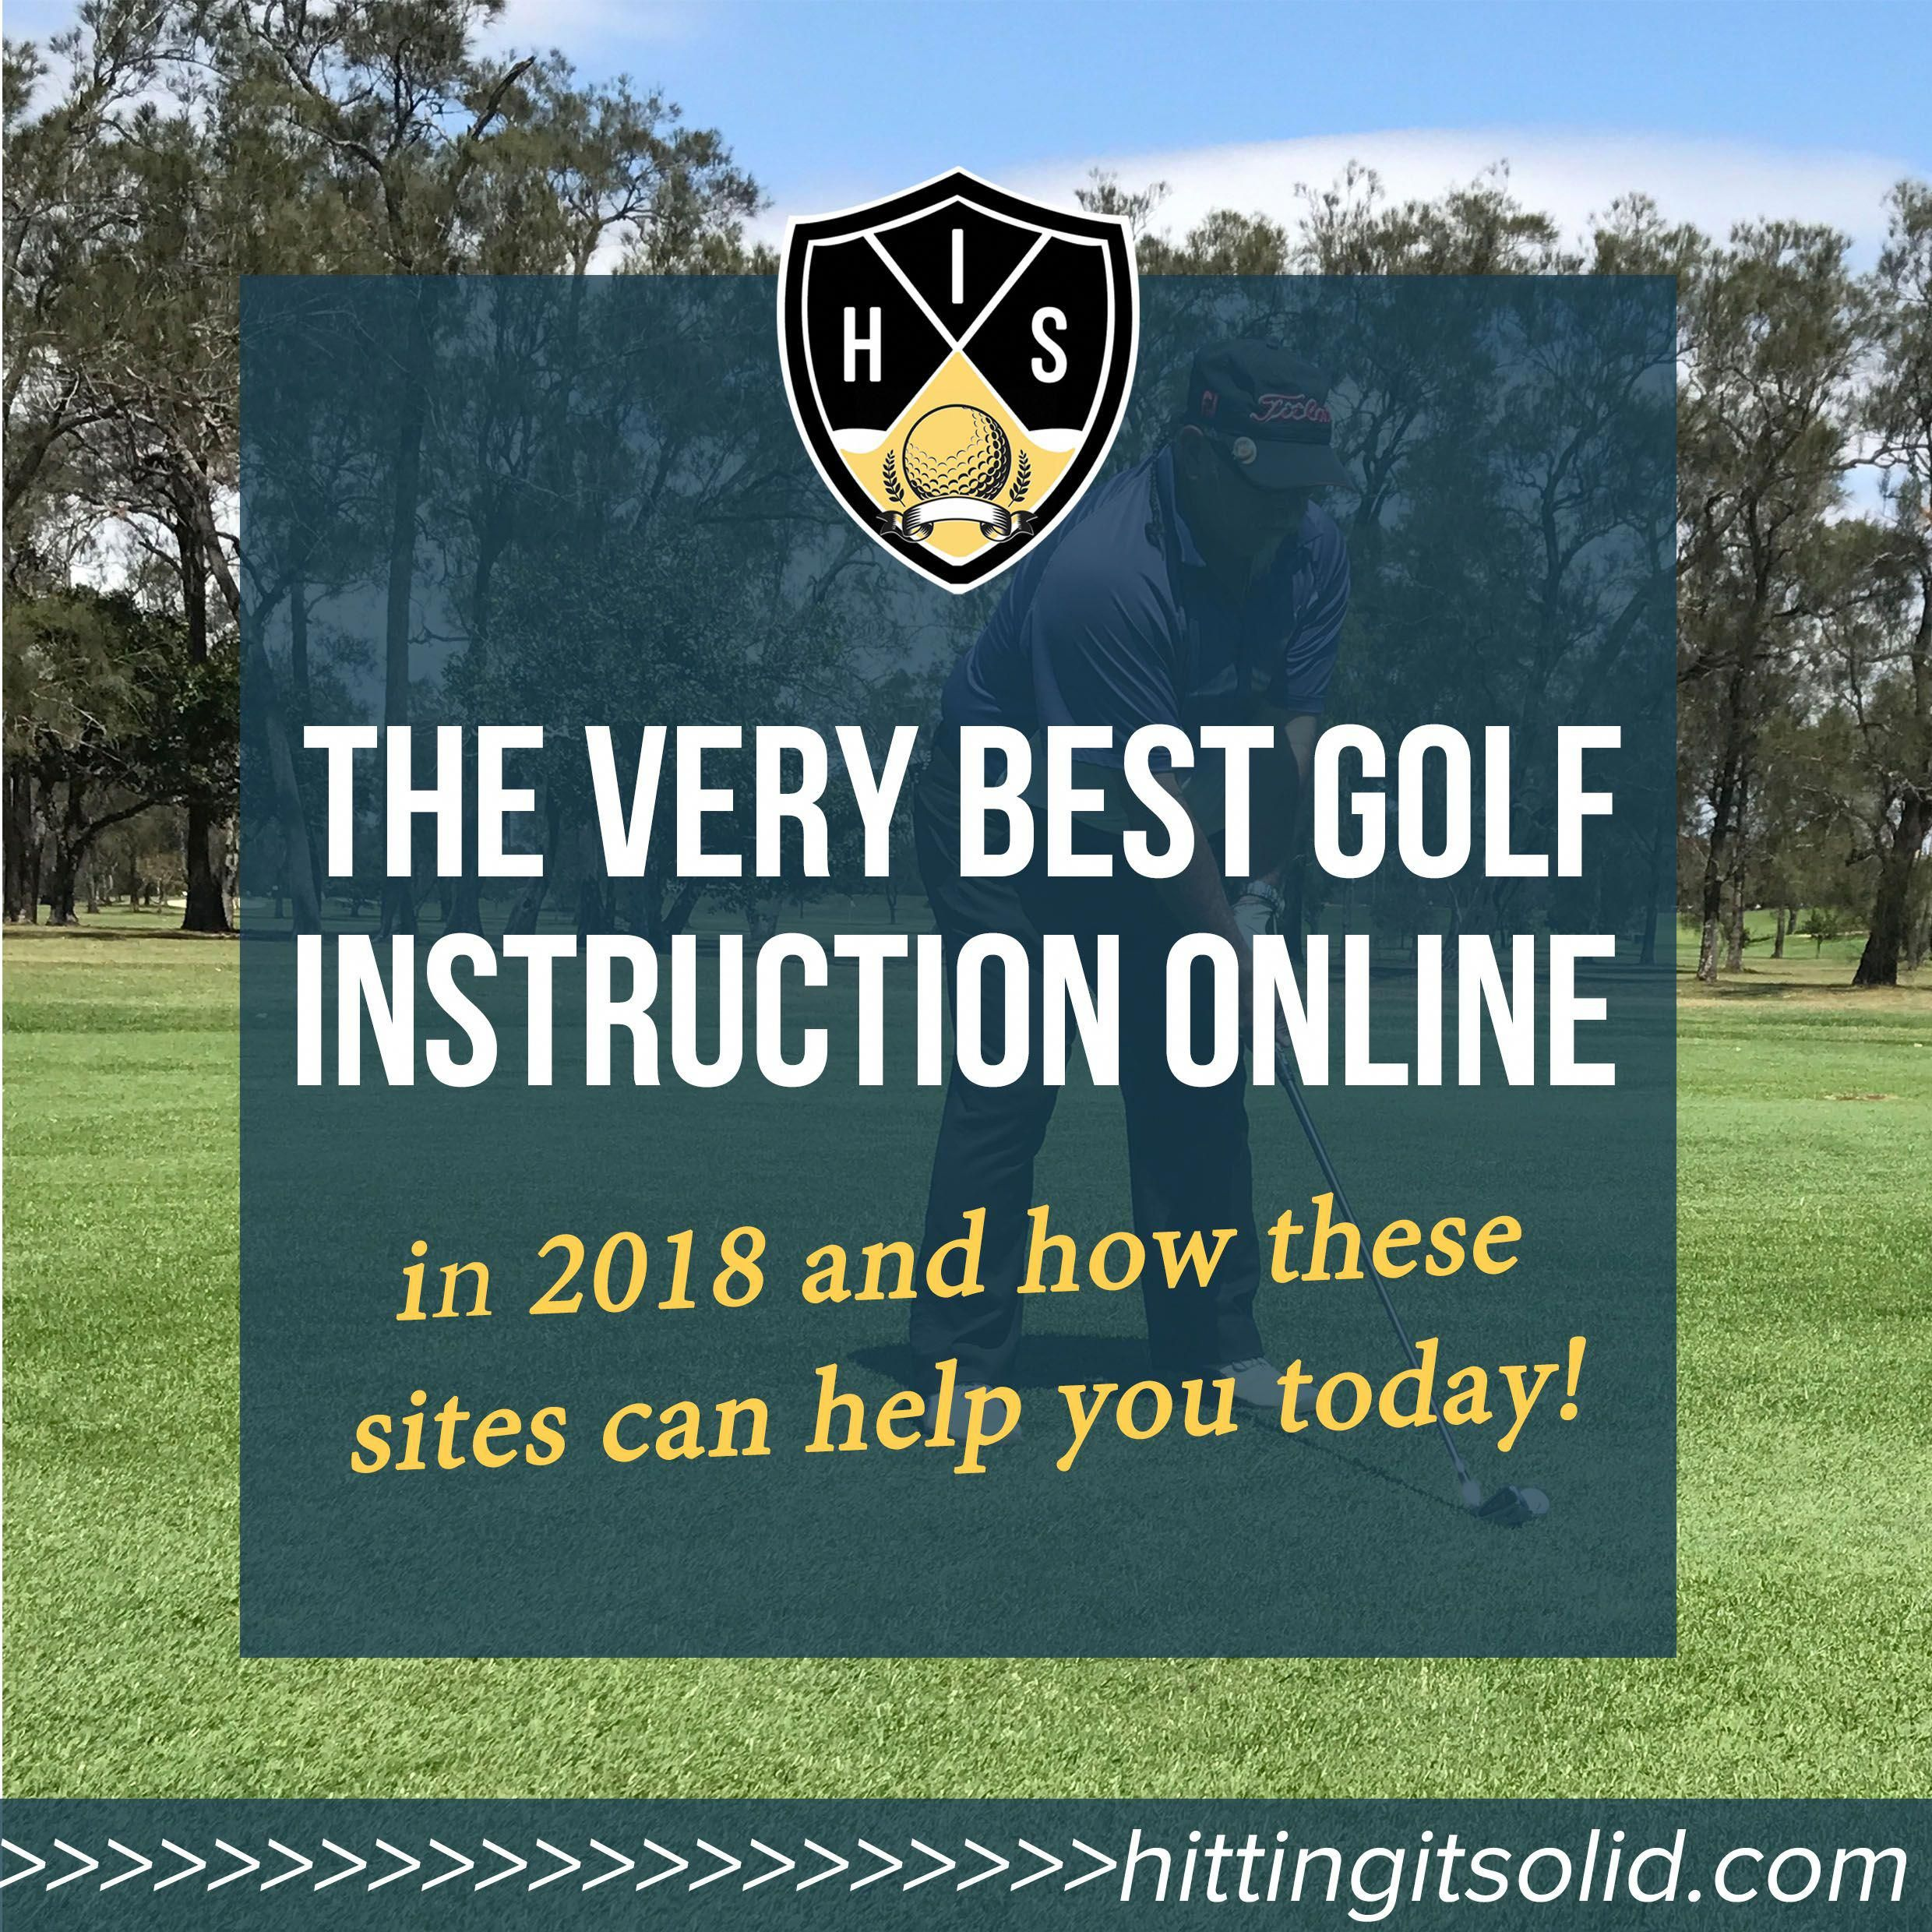 Golf instruction online: the definitive guide for all golfers.